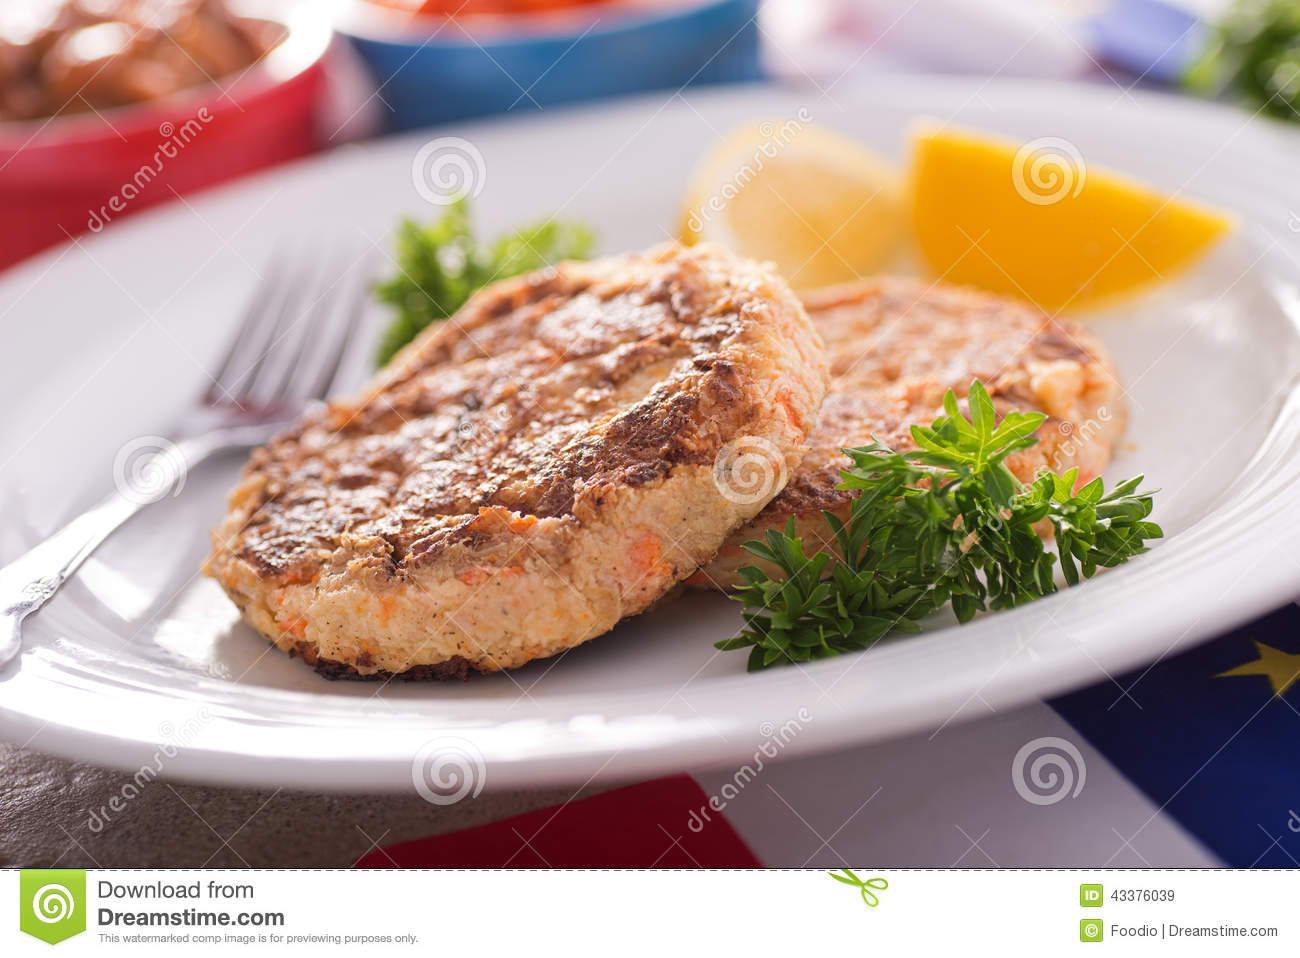 Acadian Fish Cakes